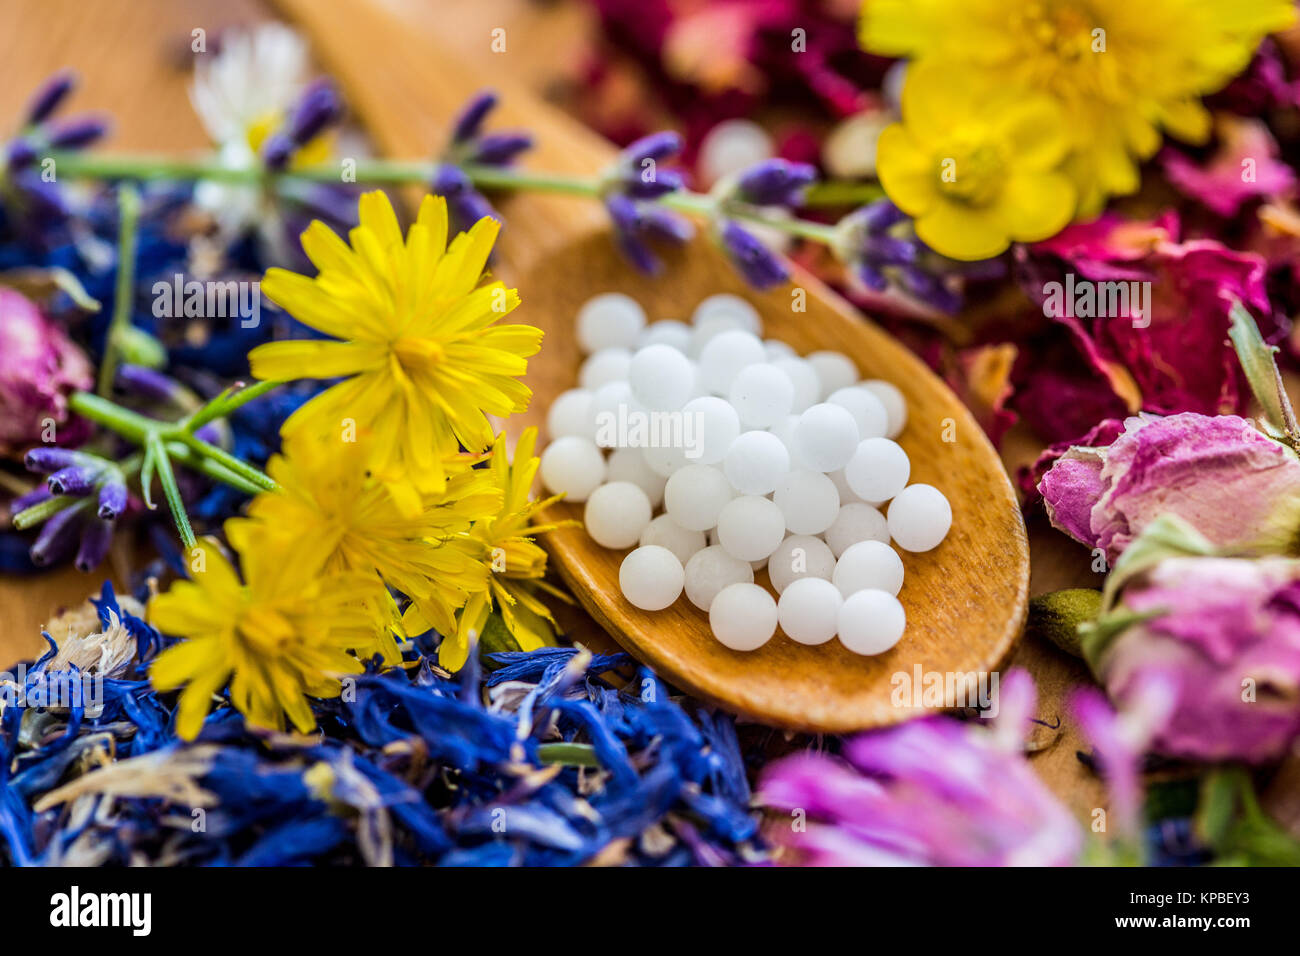 Homeopathic pills. - Stock Image